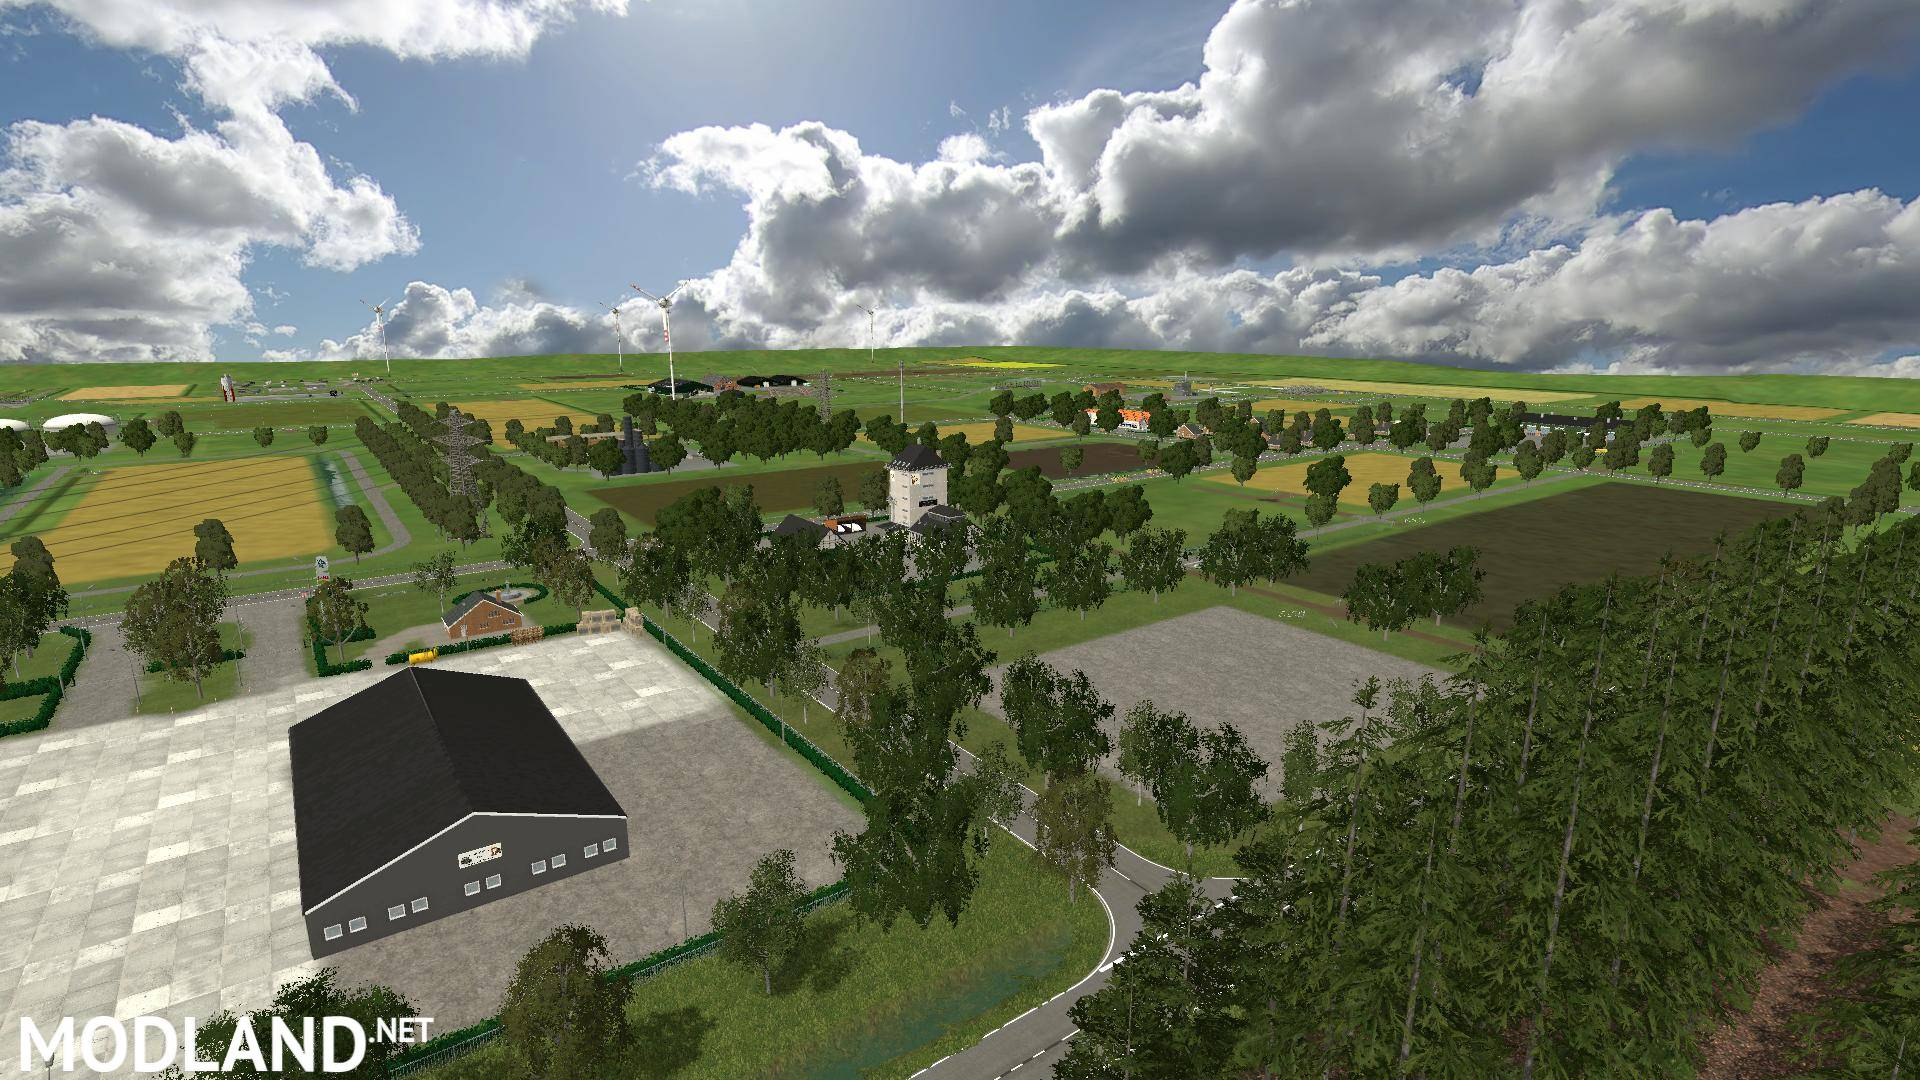 Nederland Map V2.1 Mod For Farming Simulator 2015 / 15